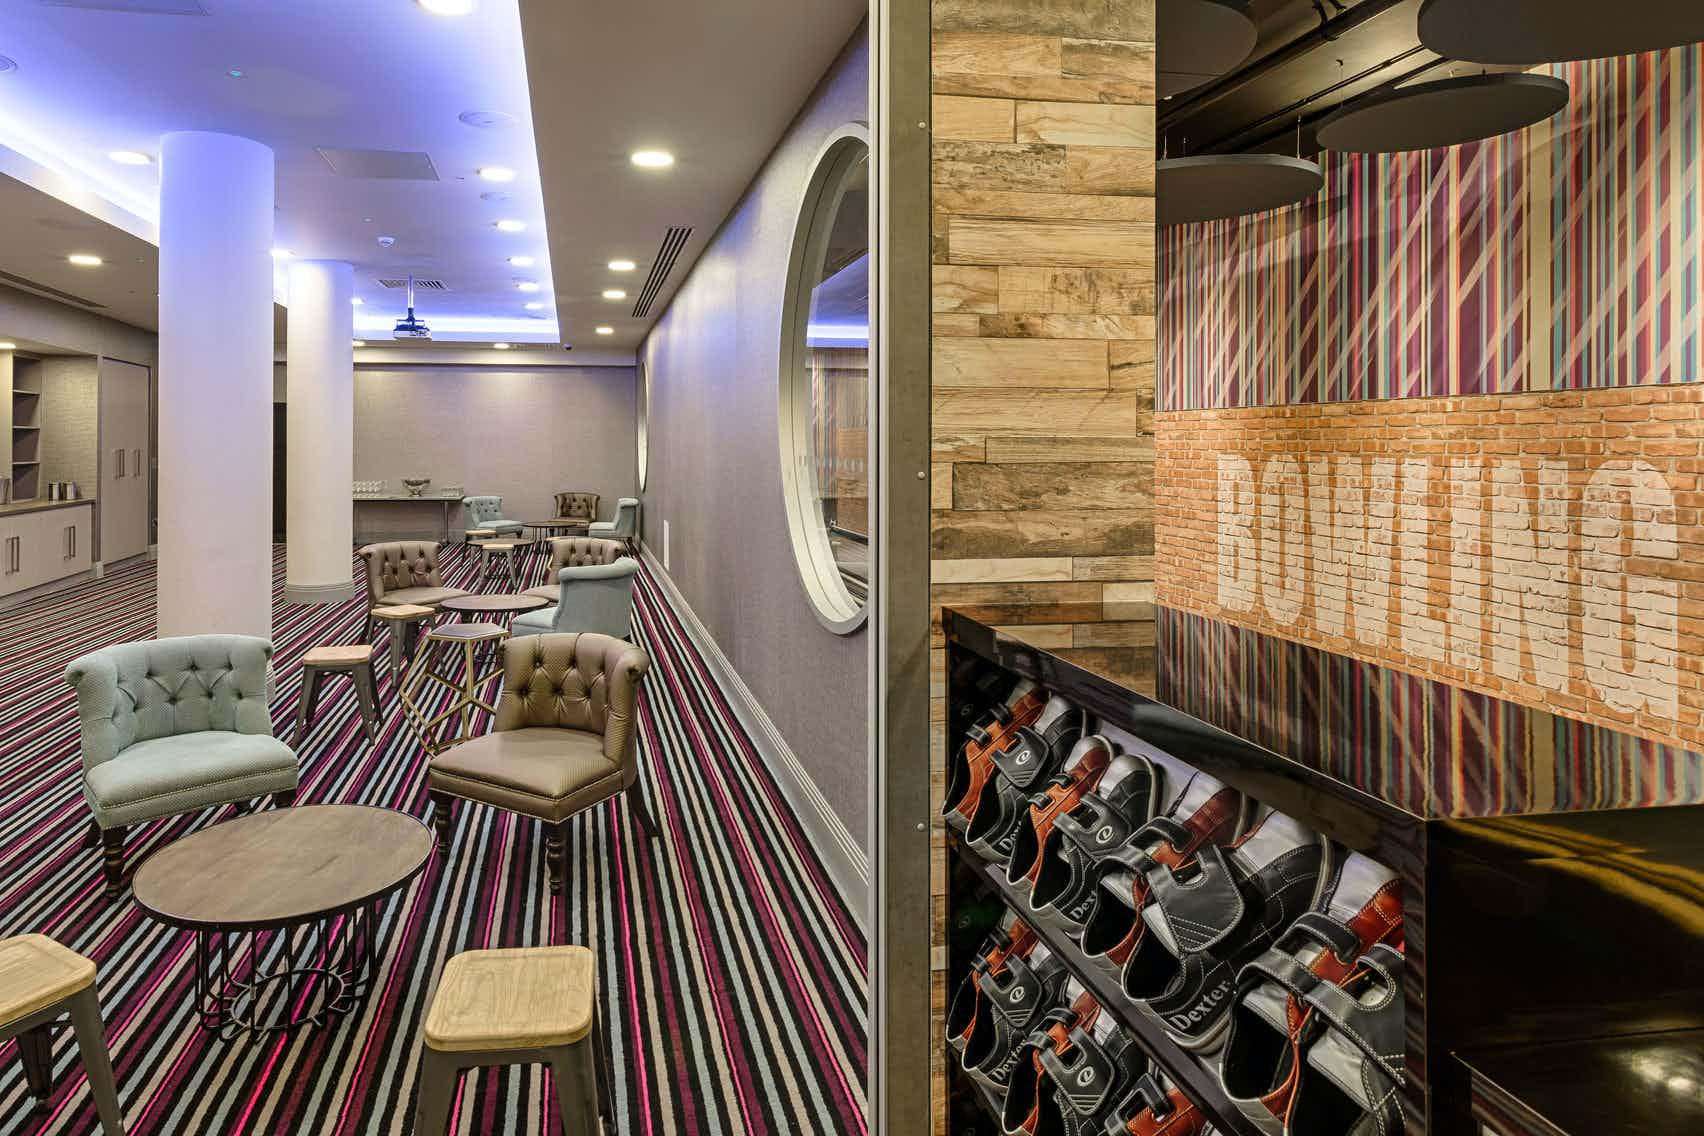 Bowling Alley At Courthouse Hotel Shoreditch A Shoreditch Bowling Alley For Hire From Headbox